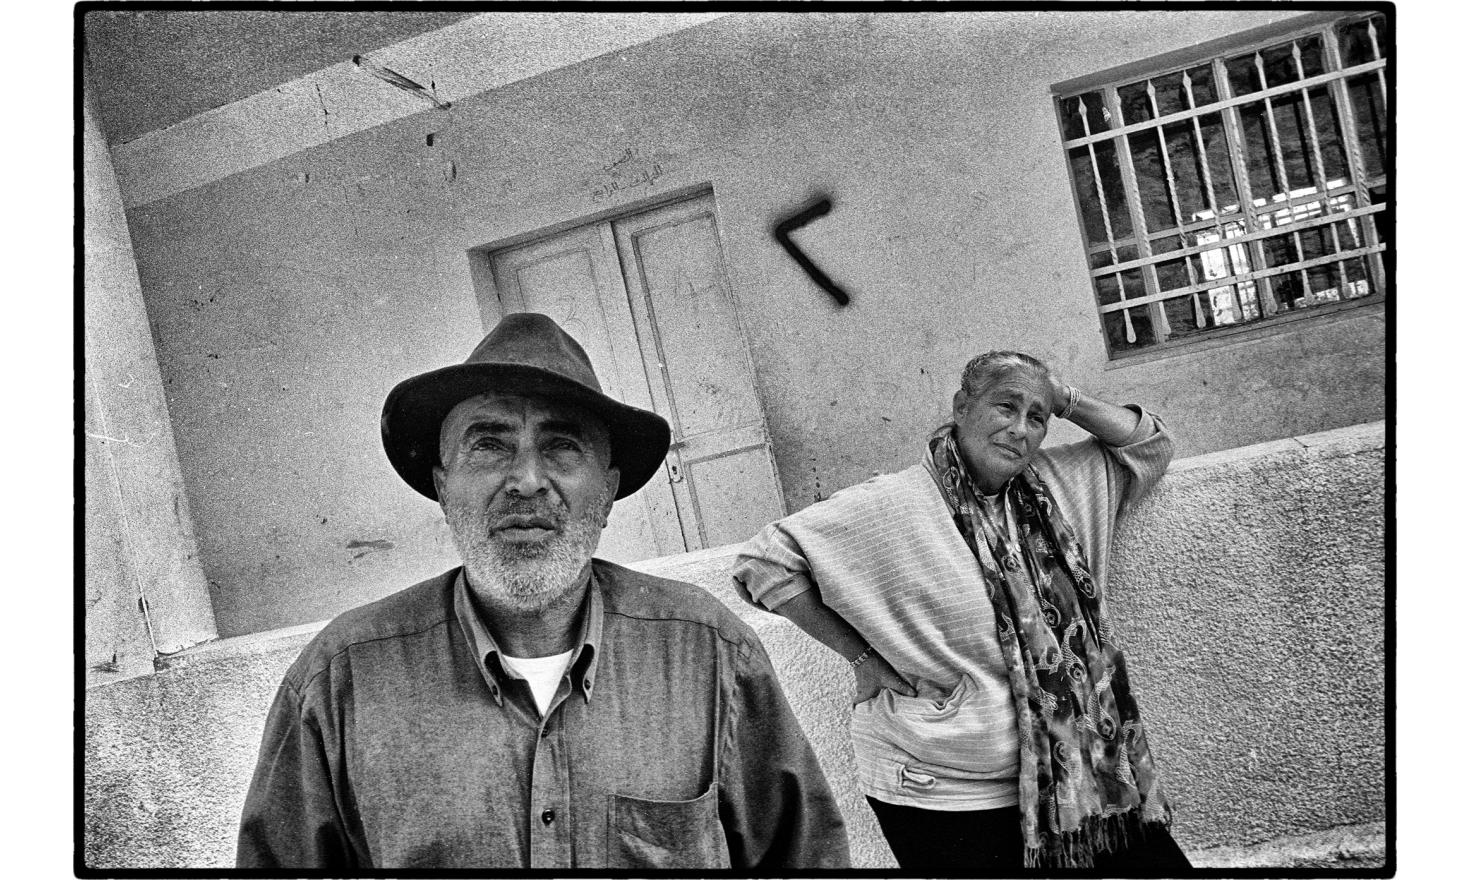 Ezra Nawi and Erella Dunayutski are Israeli citizens who spend most of their free time to help Palestinian farmers plagued by violence of some Israeli settlers. South of Hebron, West bank. November 2005.